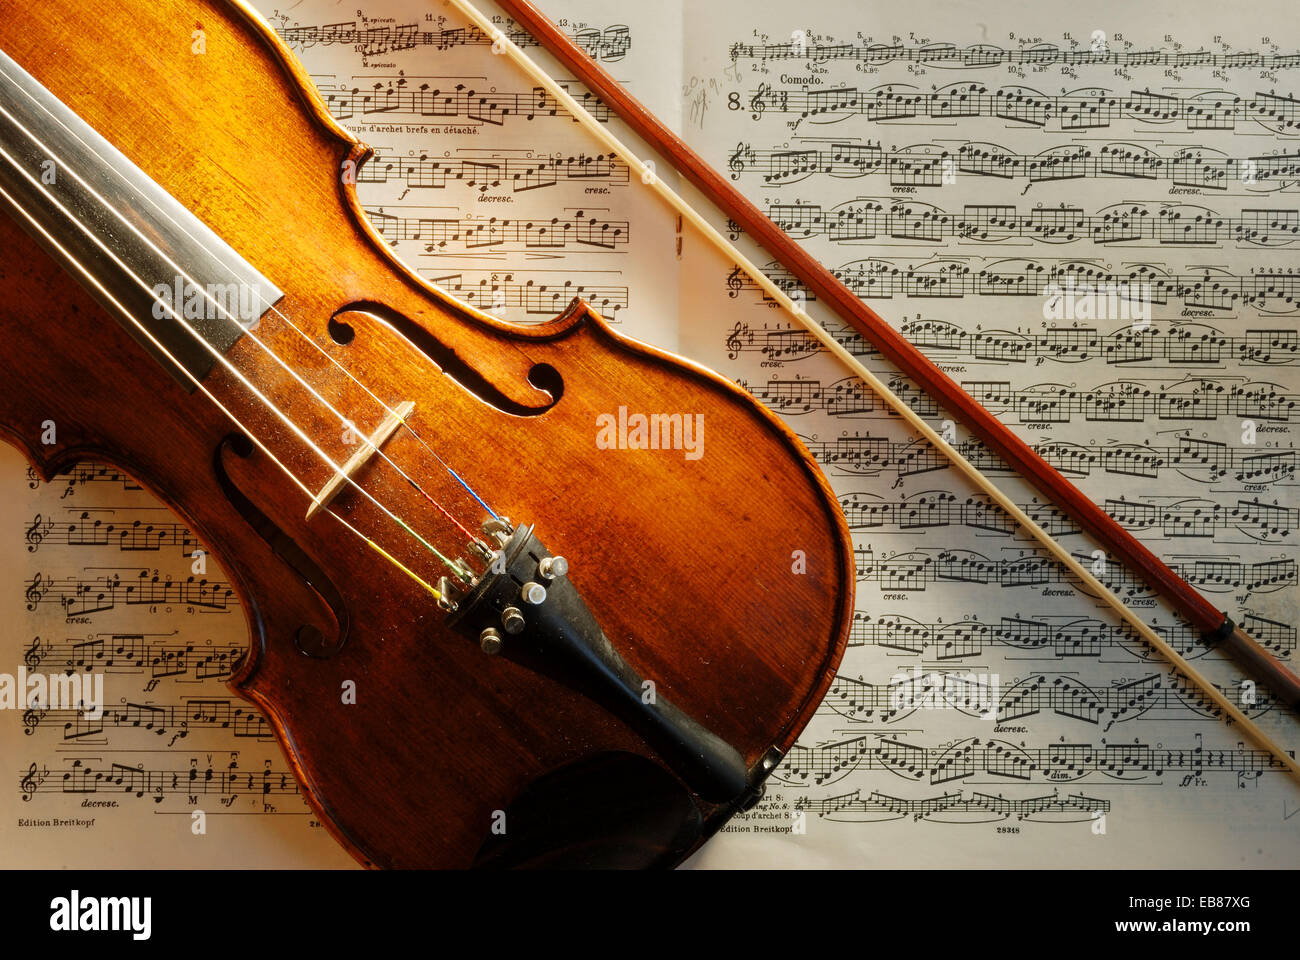 Bowed string instrument, Violin and sheet music. Bonn, Germany, 2007 - Stock Image